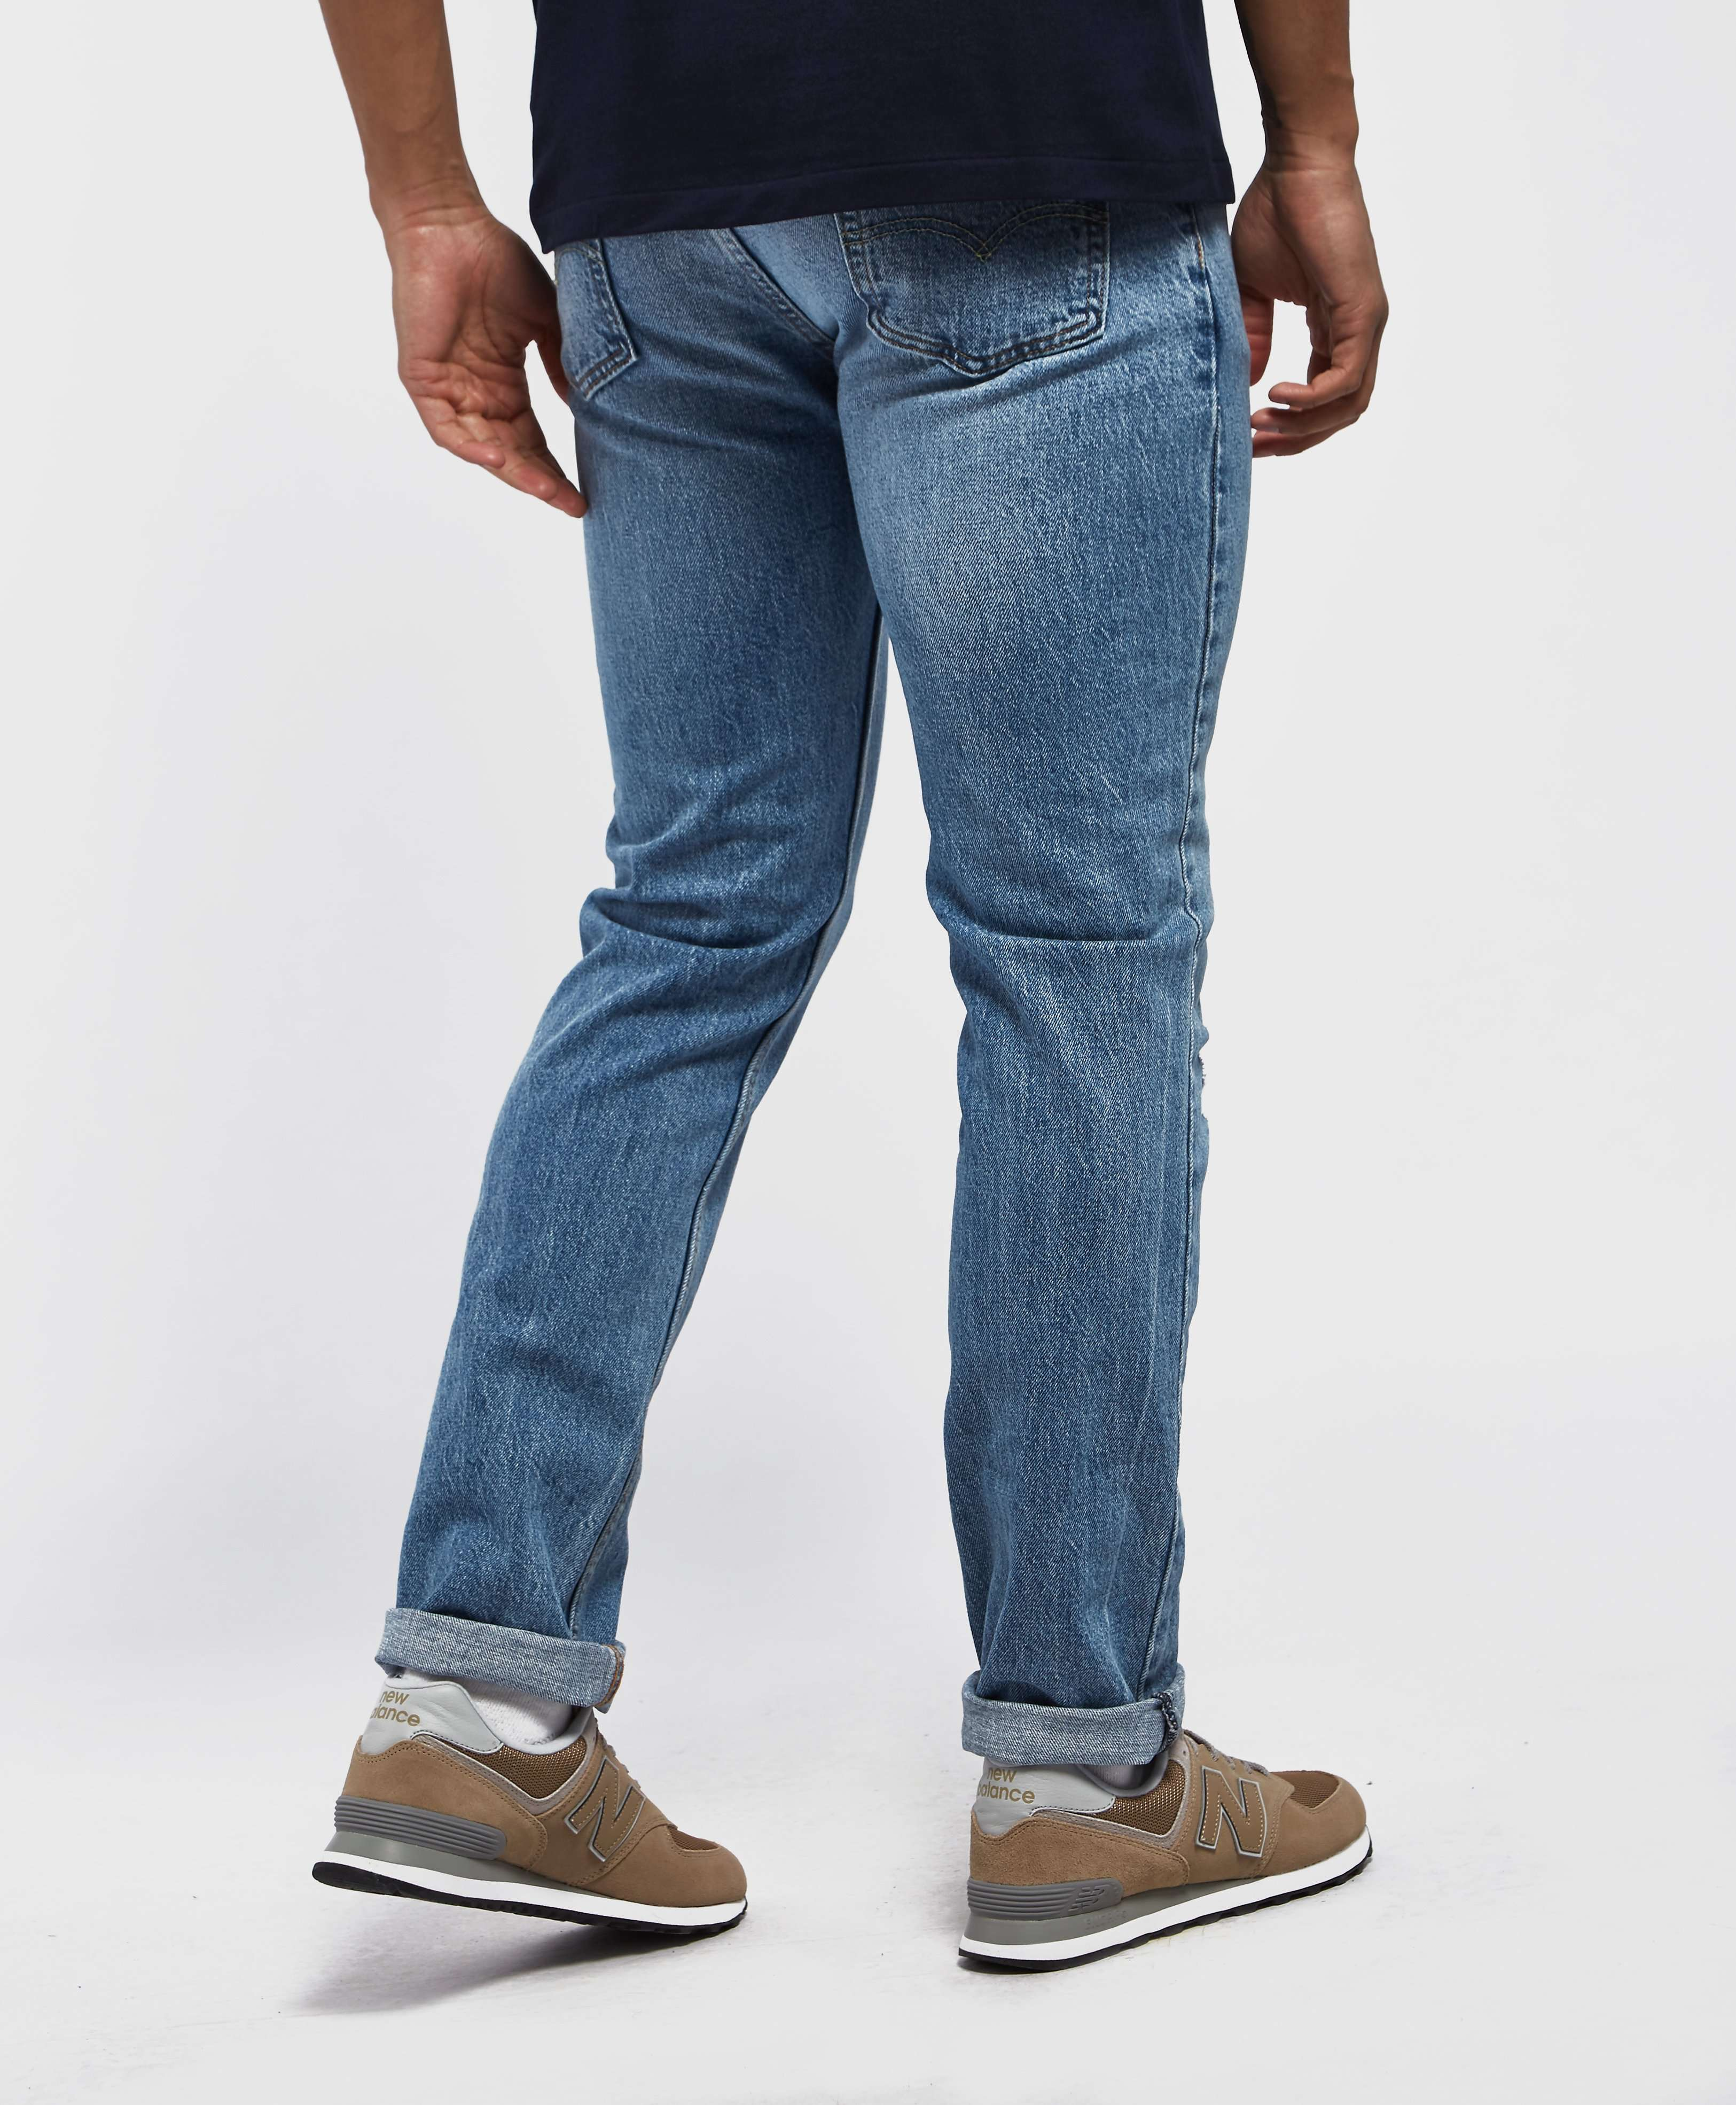 Levis 511 Slim Toto Ripped Jeans - Online Exclusive